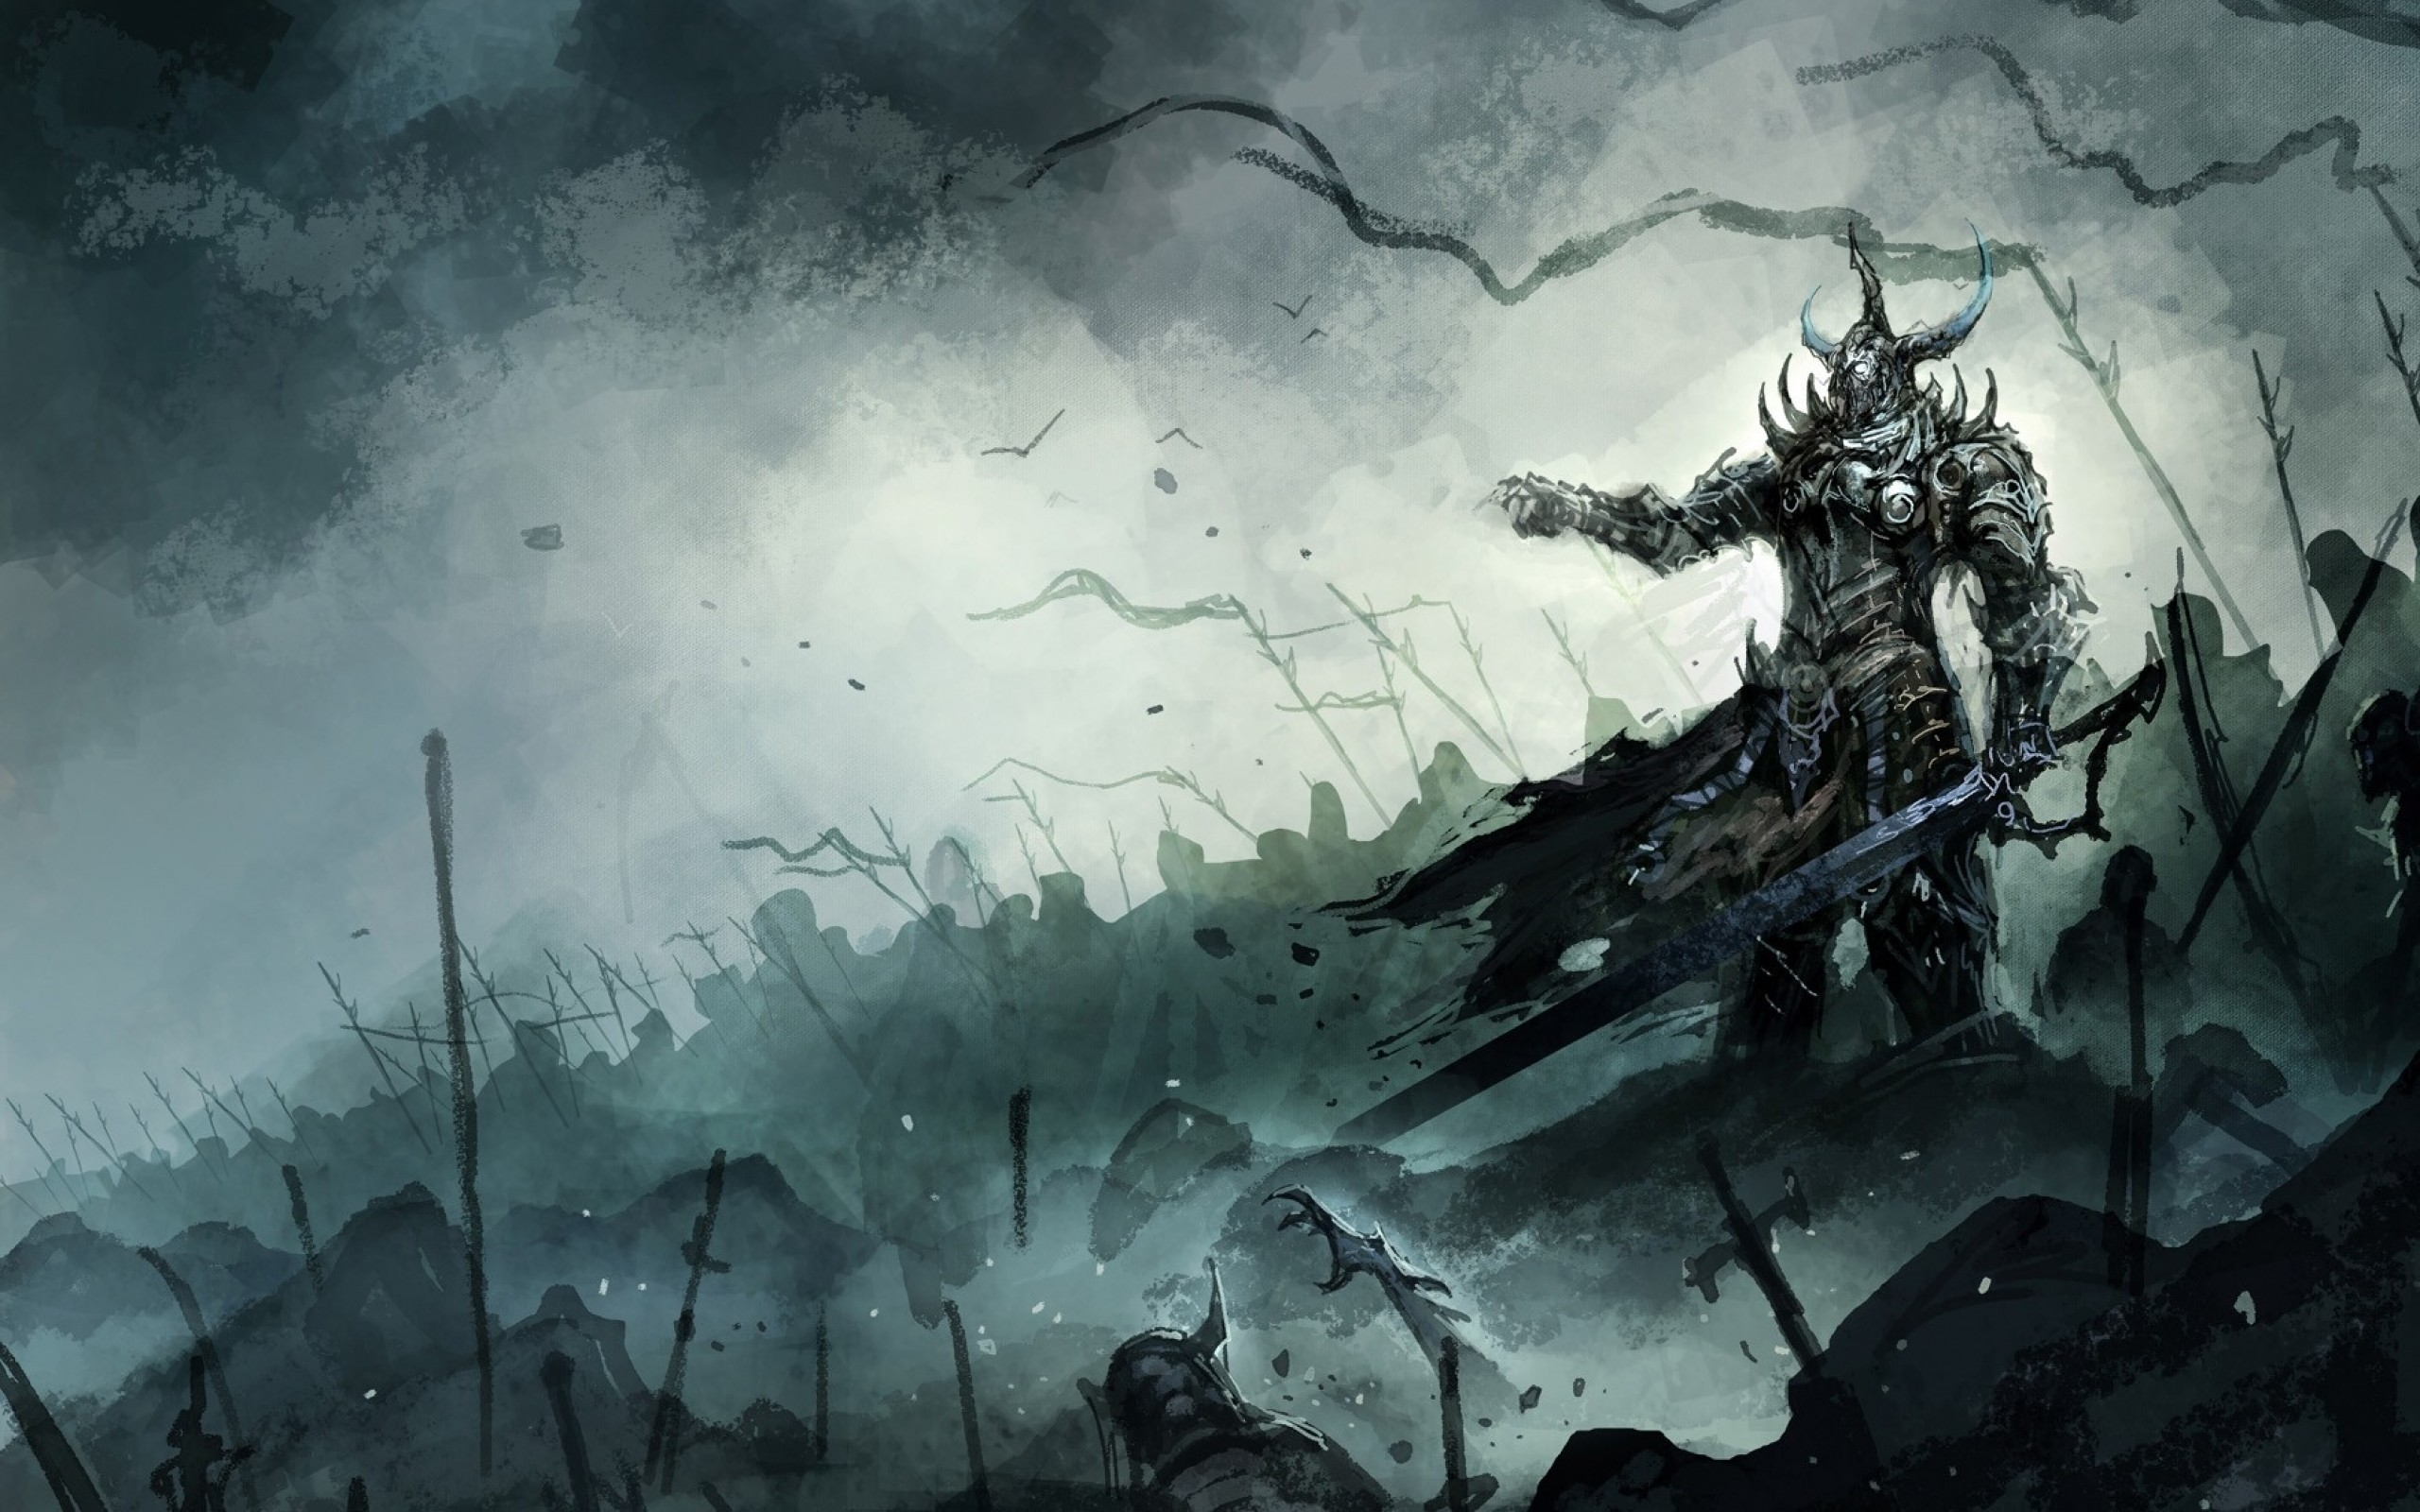 Res: 2560x1600, Warrior Epic HD Wallpapers 25 - 2560 X 1600